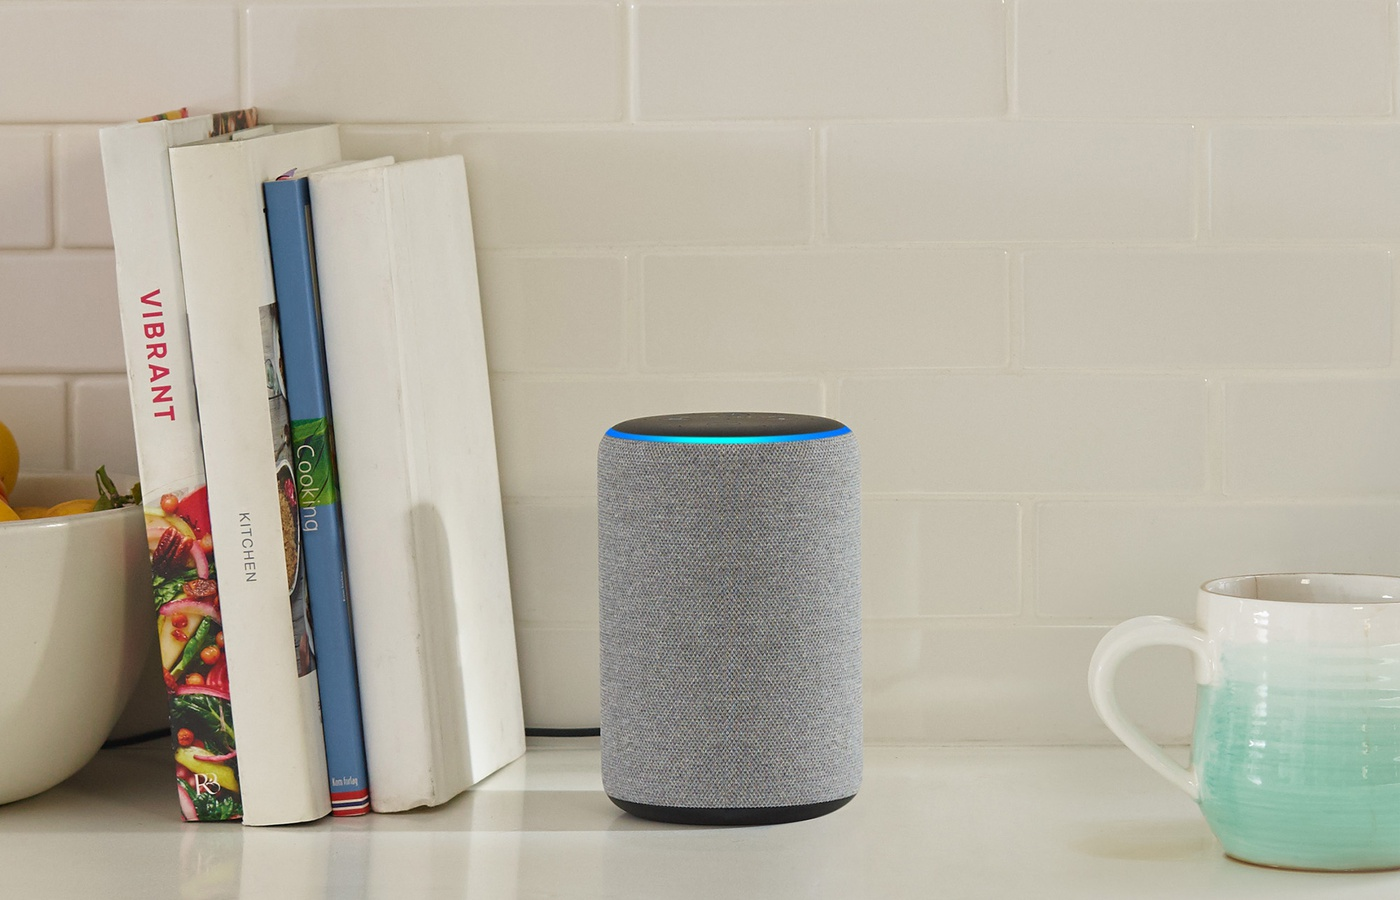 What Do the Different Light Colors on the Amazon Echo Mean?